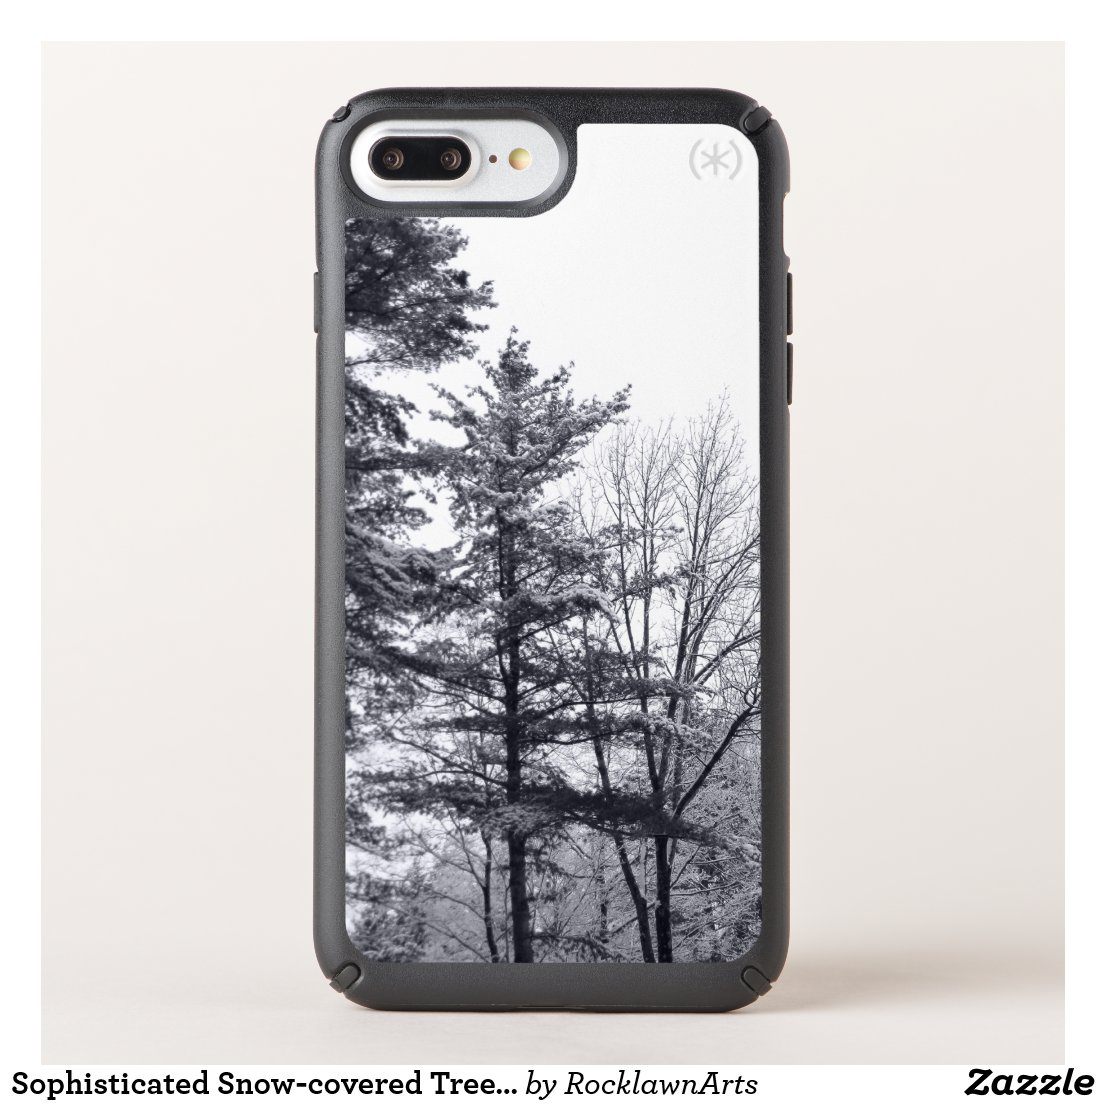 Sophisticated Snow-covered Trees Winter Photo Speck iPhone Case